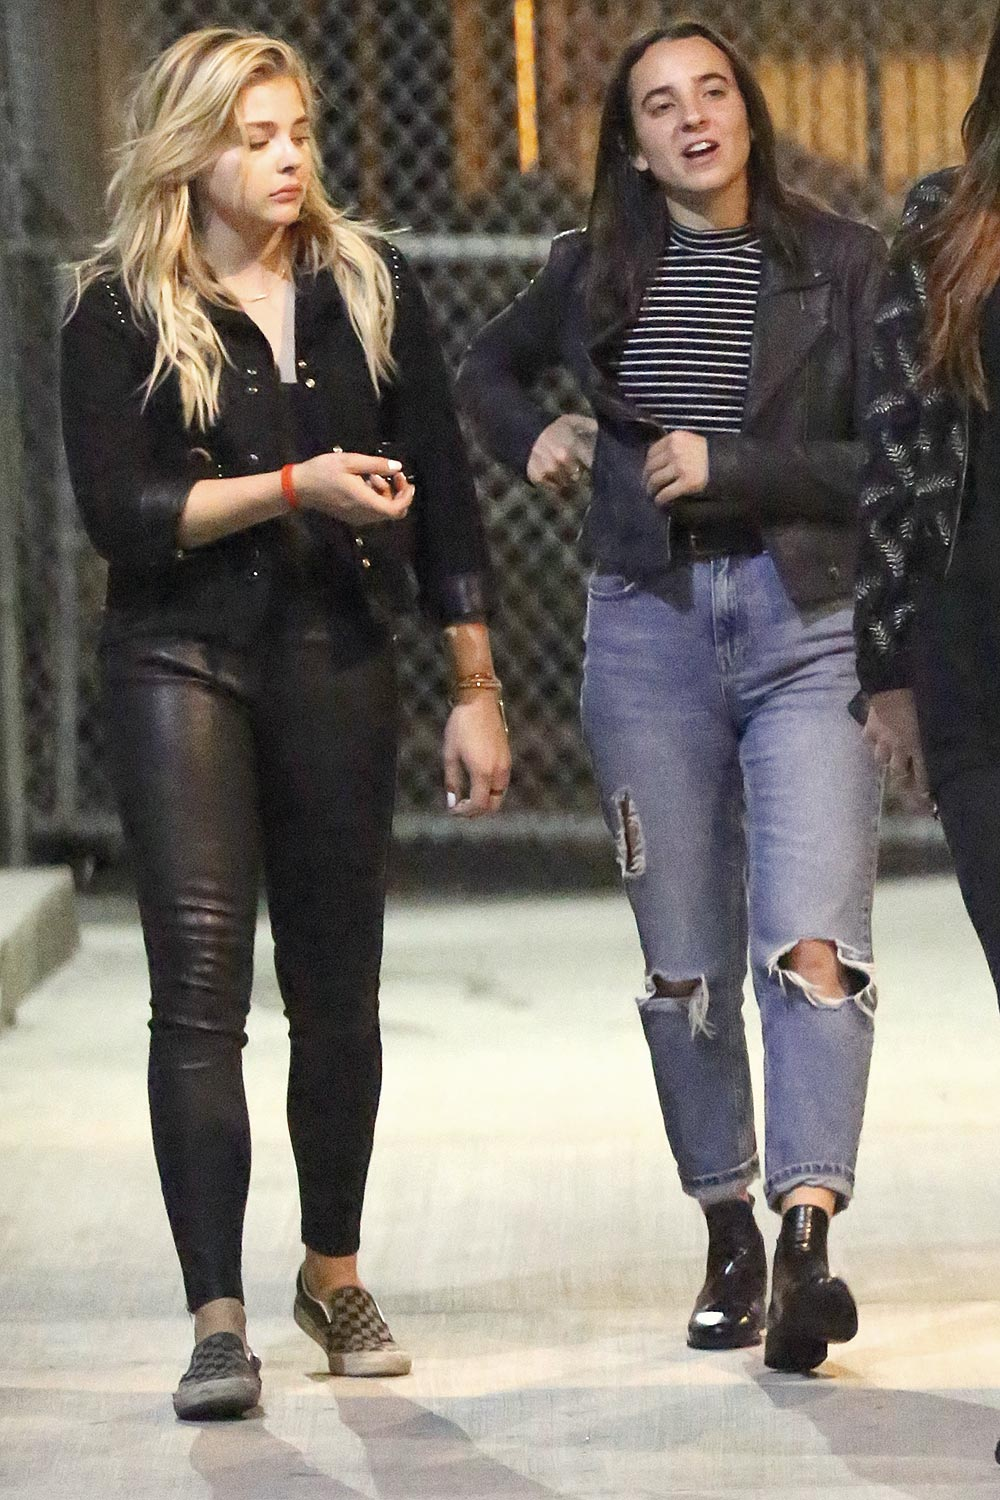 e31a9b6266 Chloe Moretz leaving Warwick nightclub - Leather Celebrities